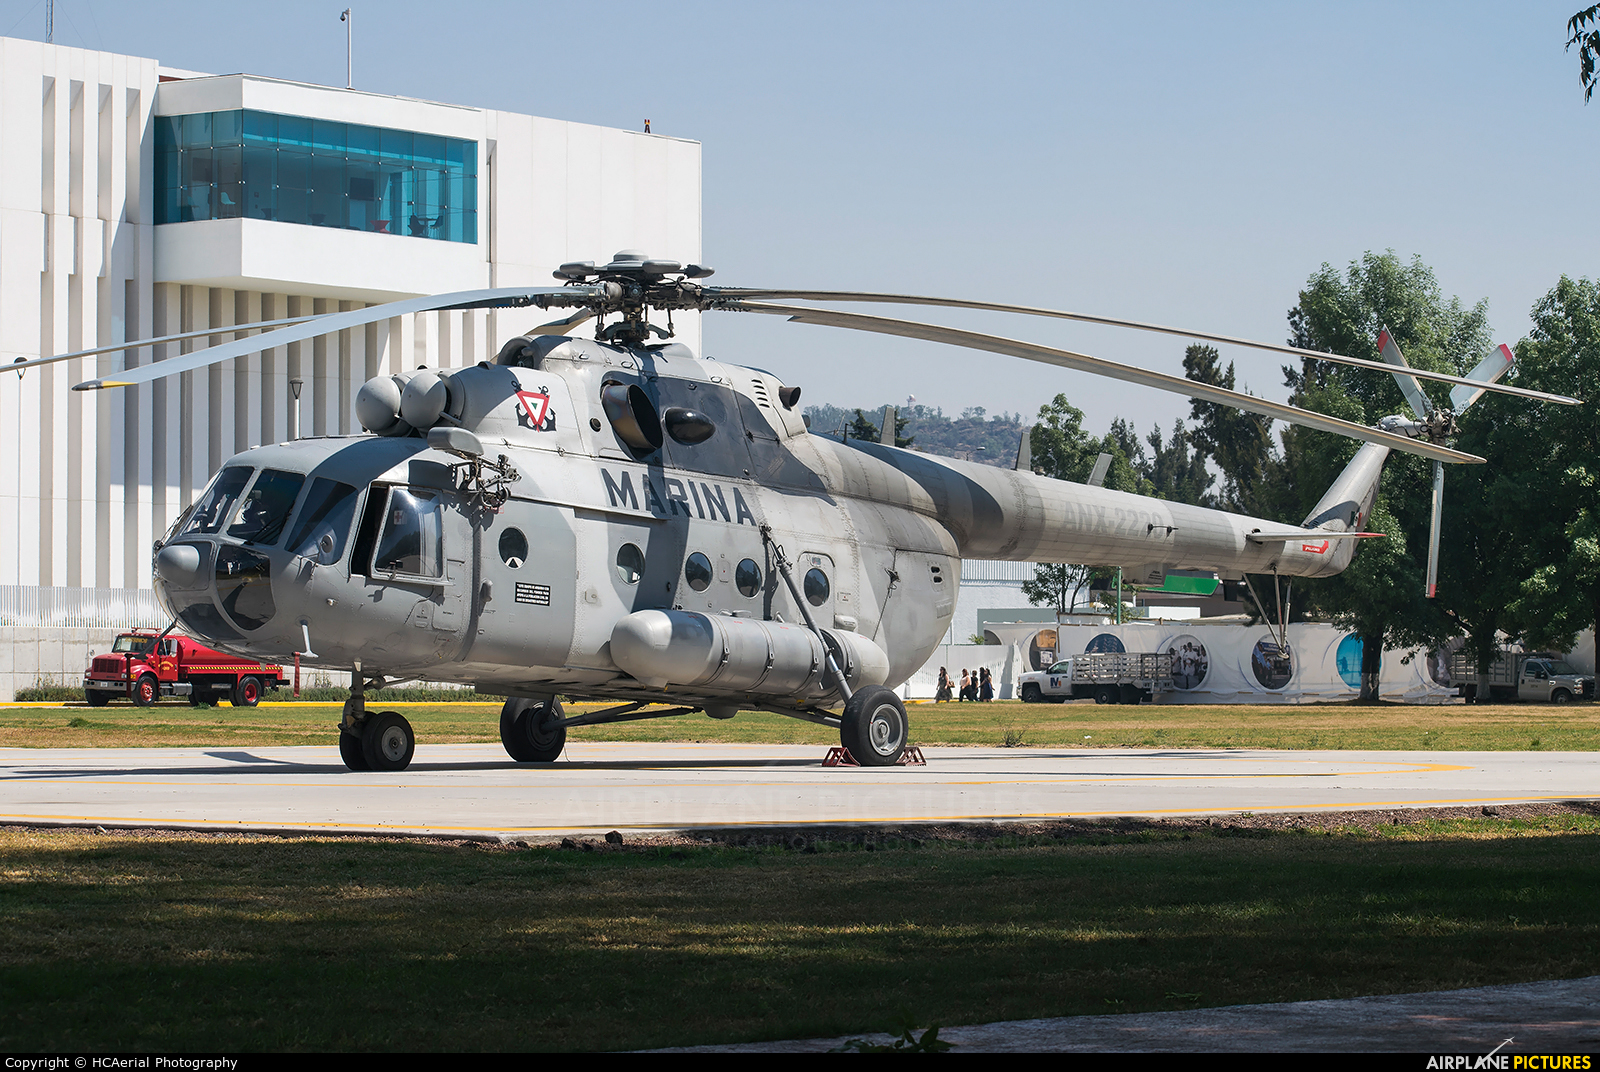 Mexico - Navy ANX-2220 aircraft at Mexico City - Licenciado Benito Juarez Intl